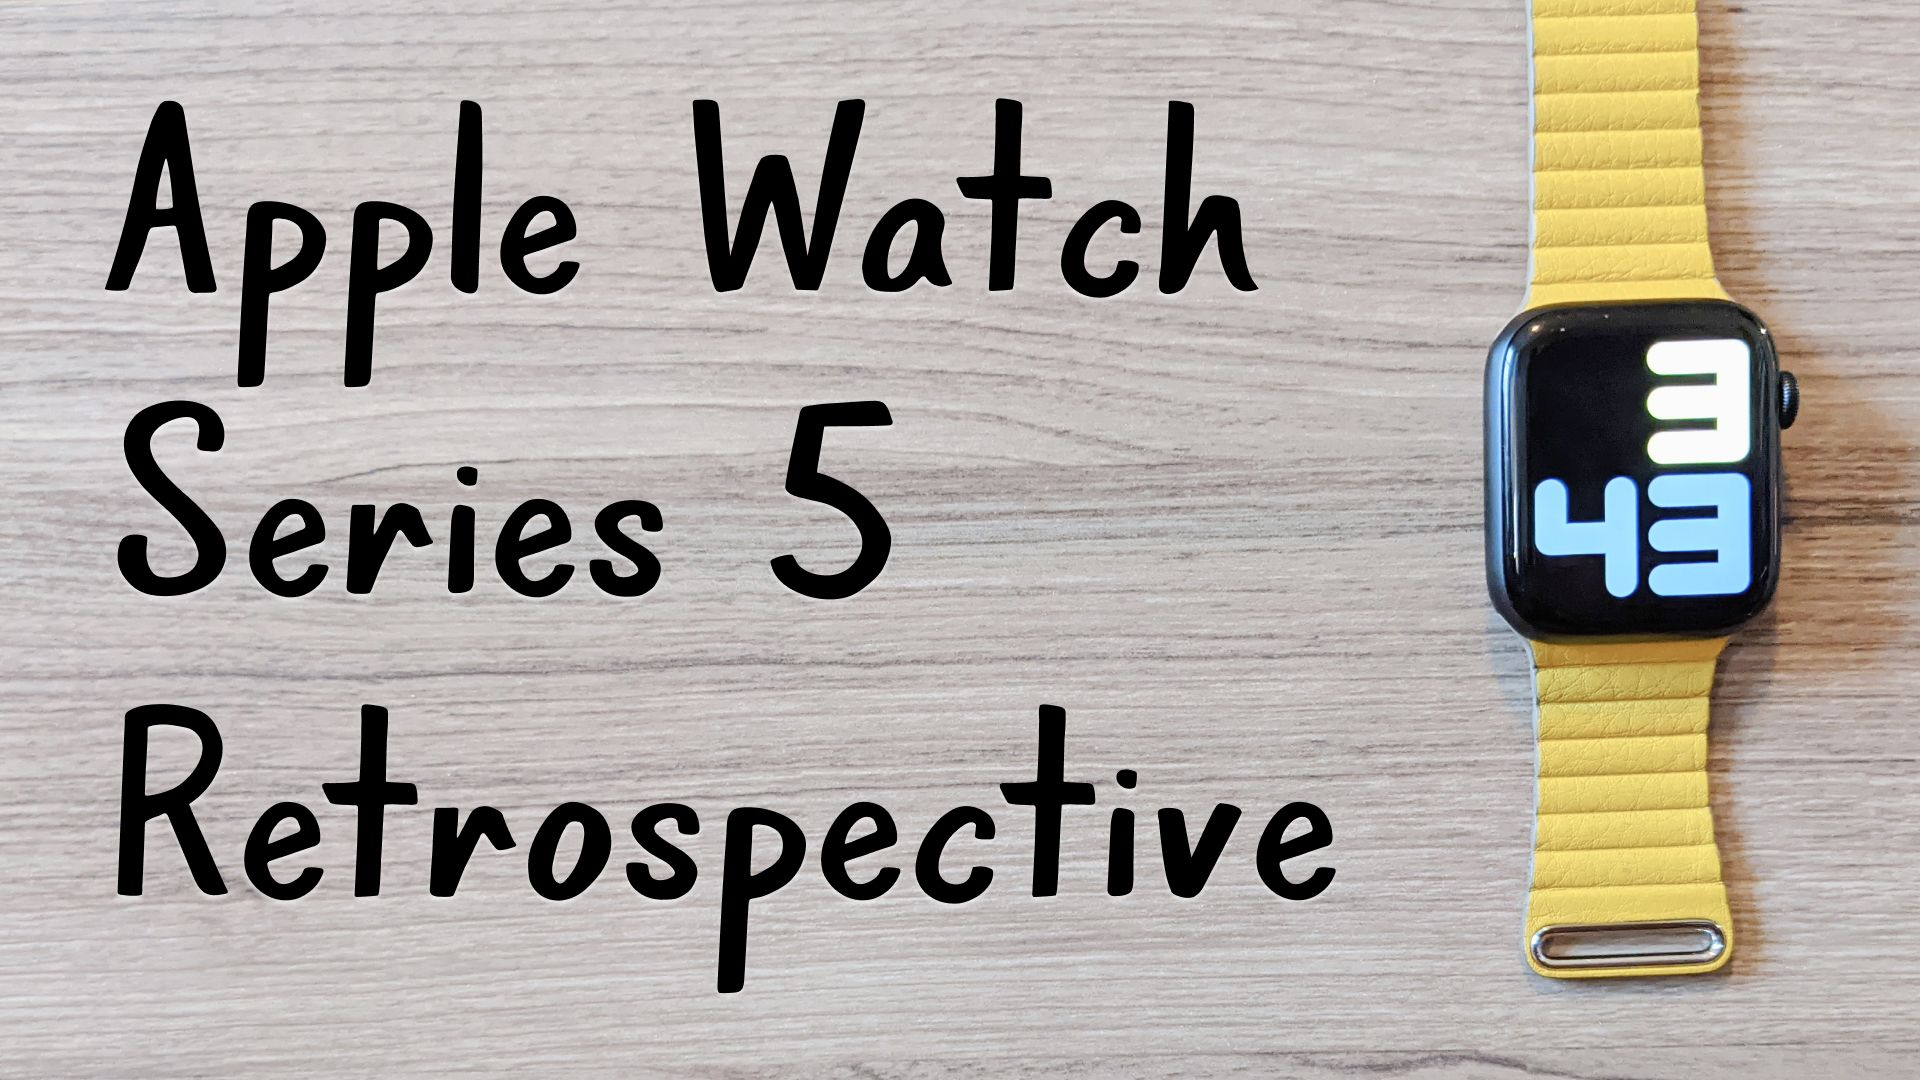 An Apple Watch Series 5 Retrospective